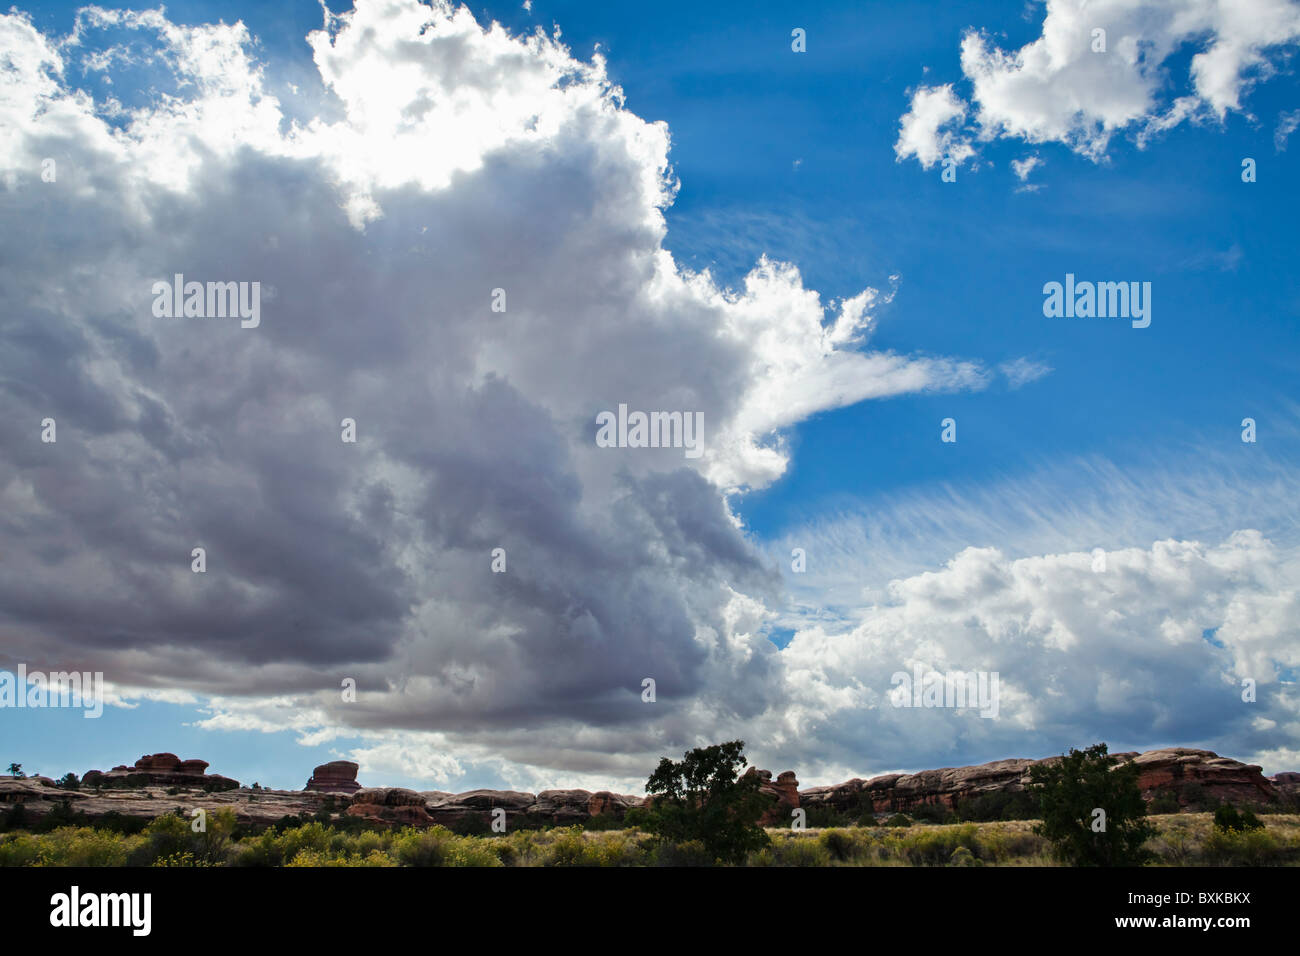 Large rain clouds gather overhead in Canyonlands national Park, Utah, USA. - Stock Image